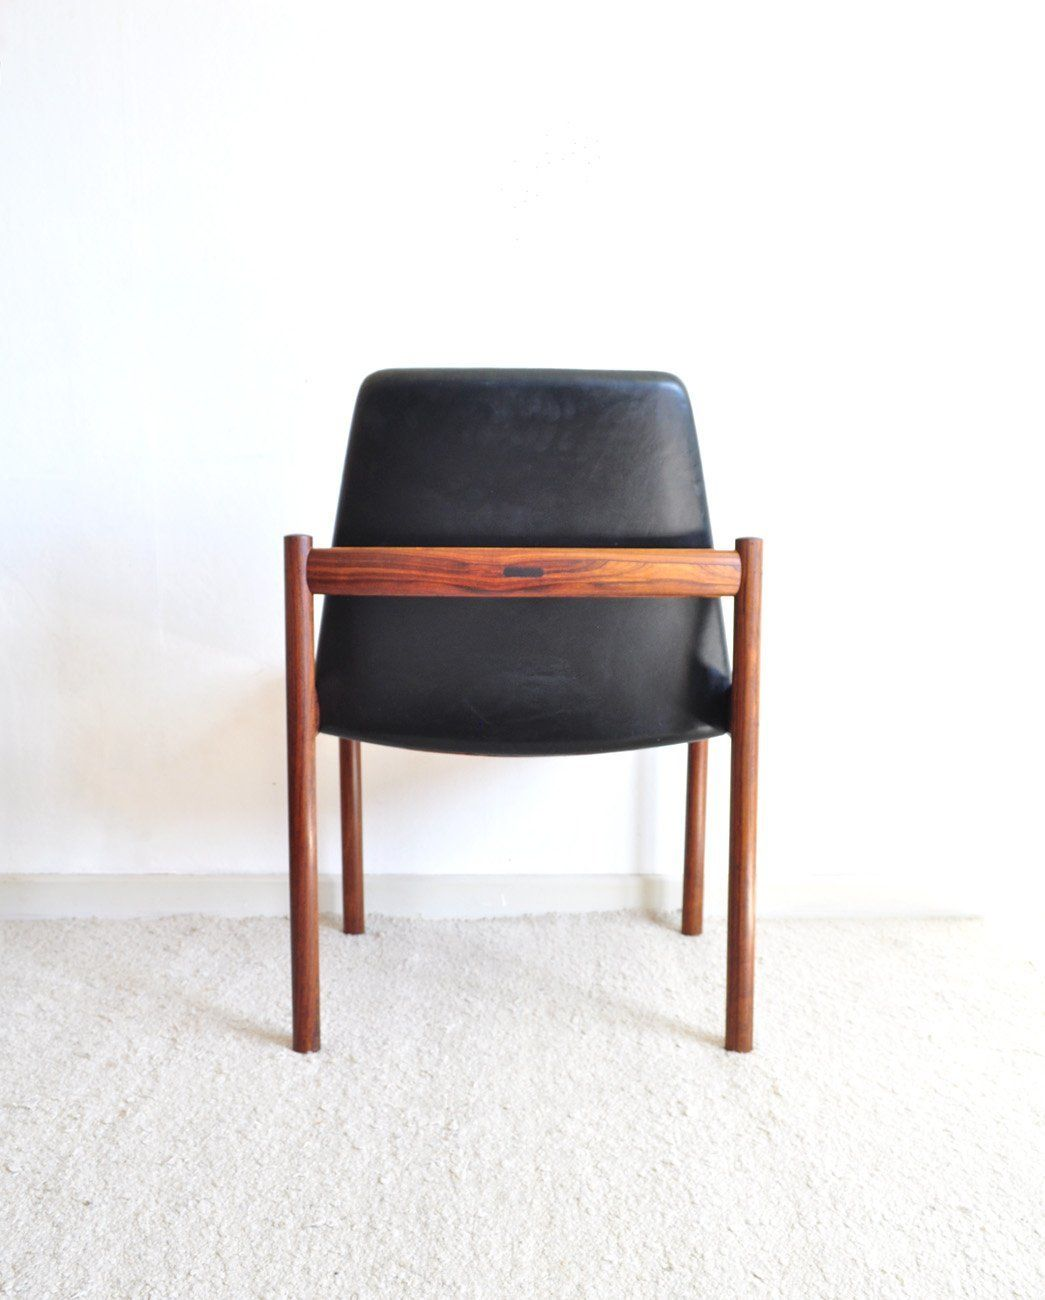 Rosewood & Leather Easy Chair By Sven Ivar Dysthe For